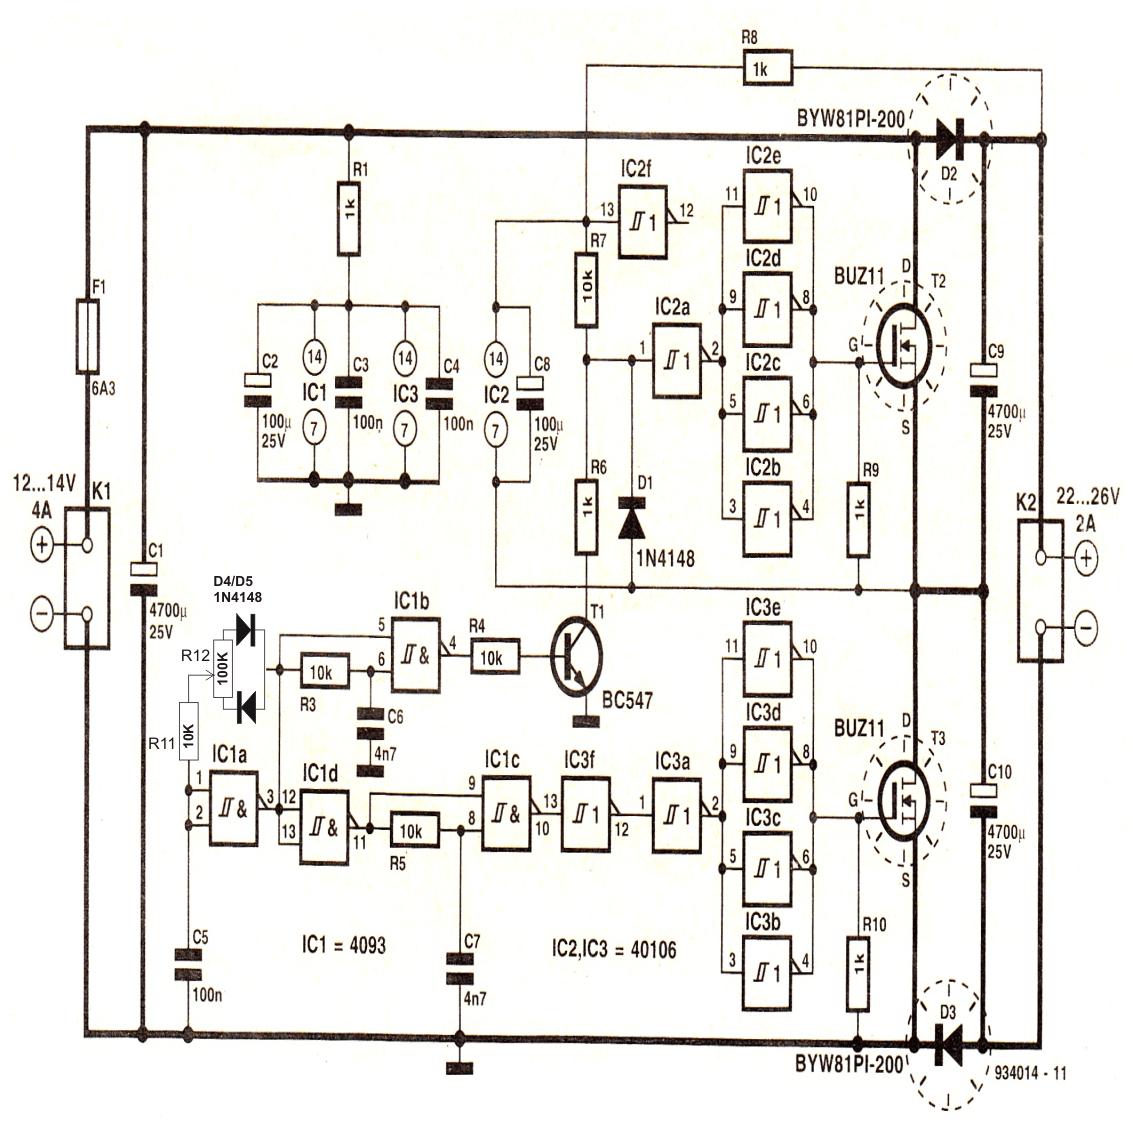 10 watt led driver circuit diagram square d water pump pressure switch wiring electronic circuits transformerless power supply